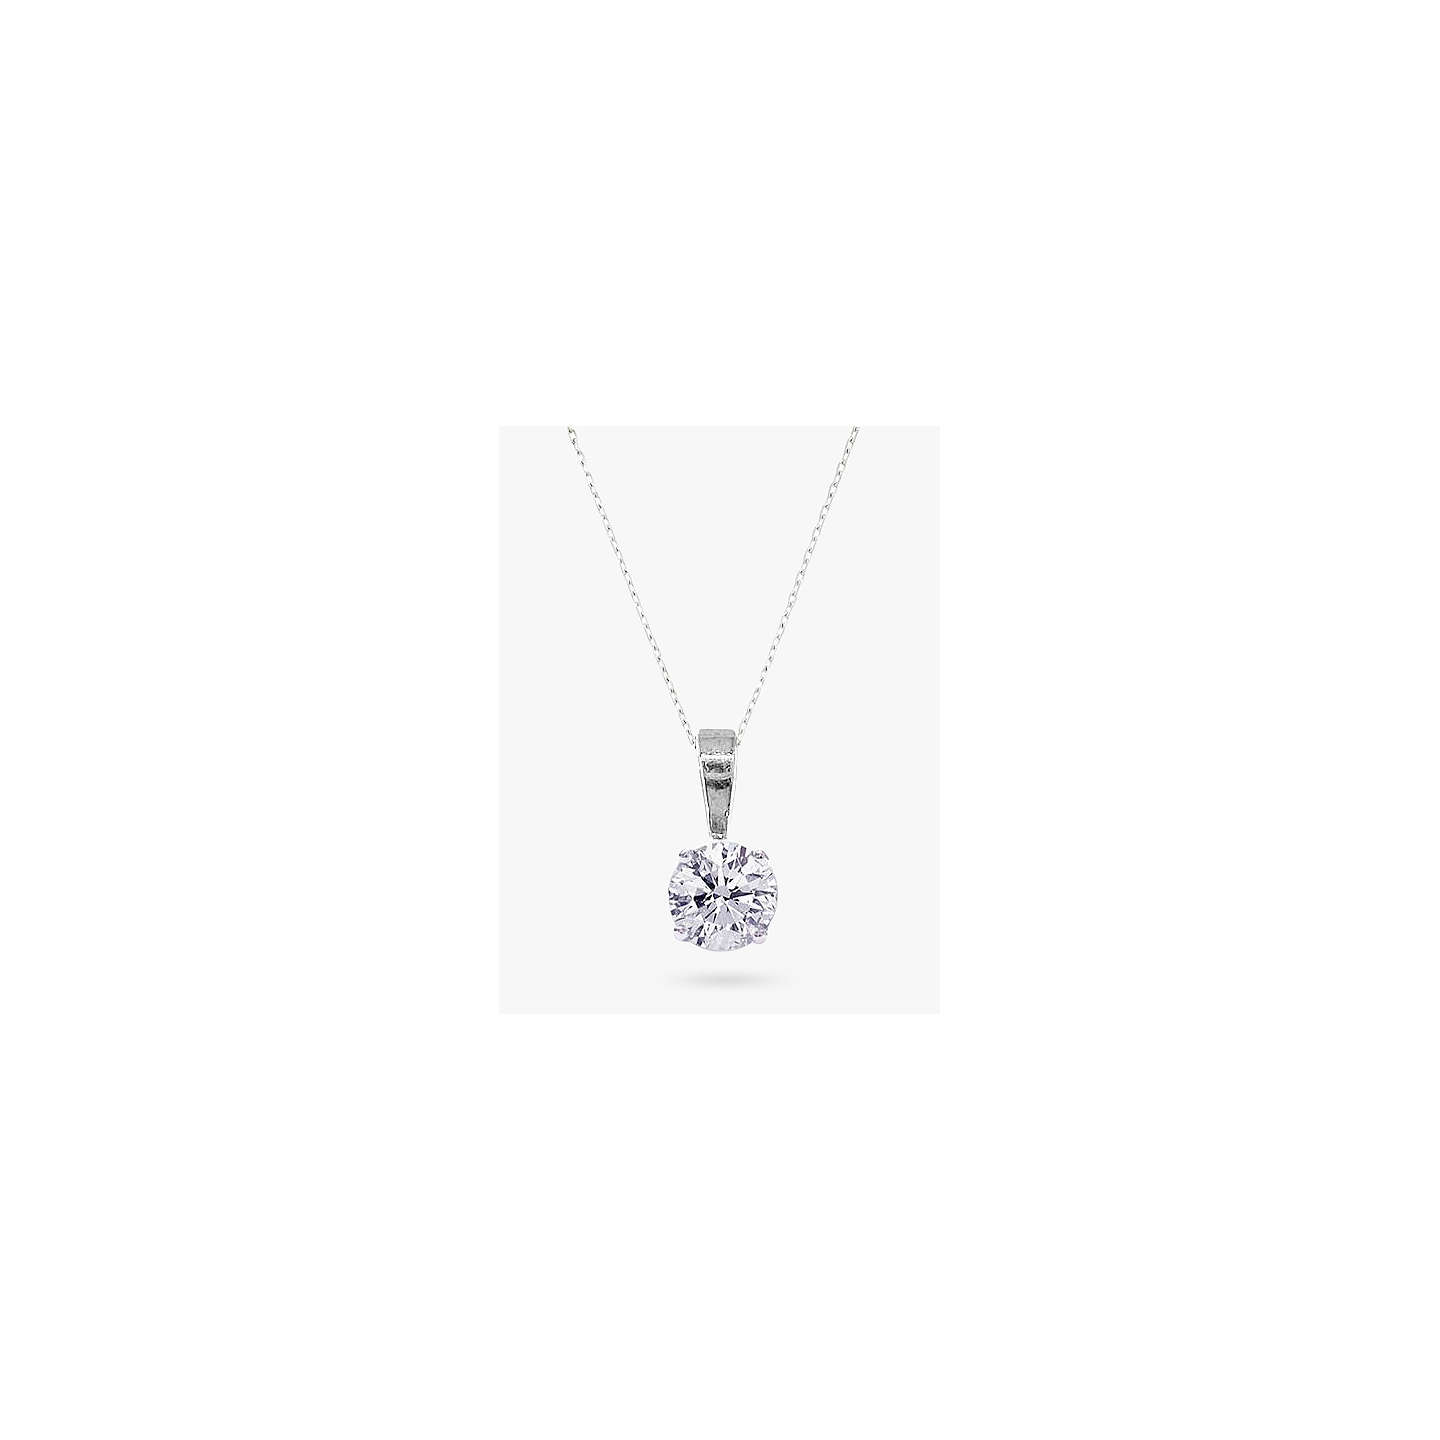 c emotion products pendant gold diamond faberge white w